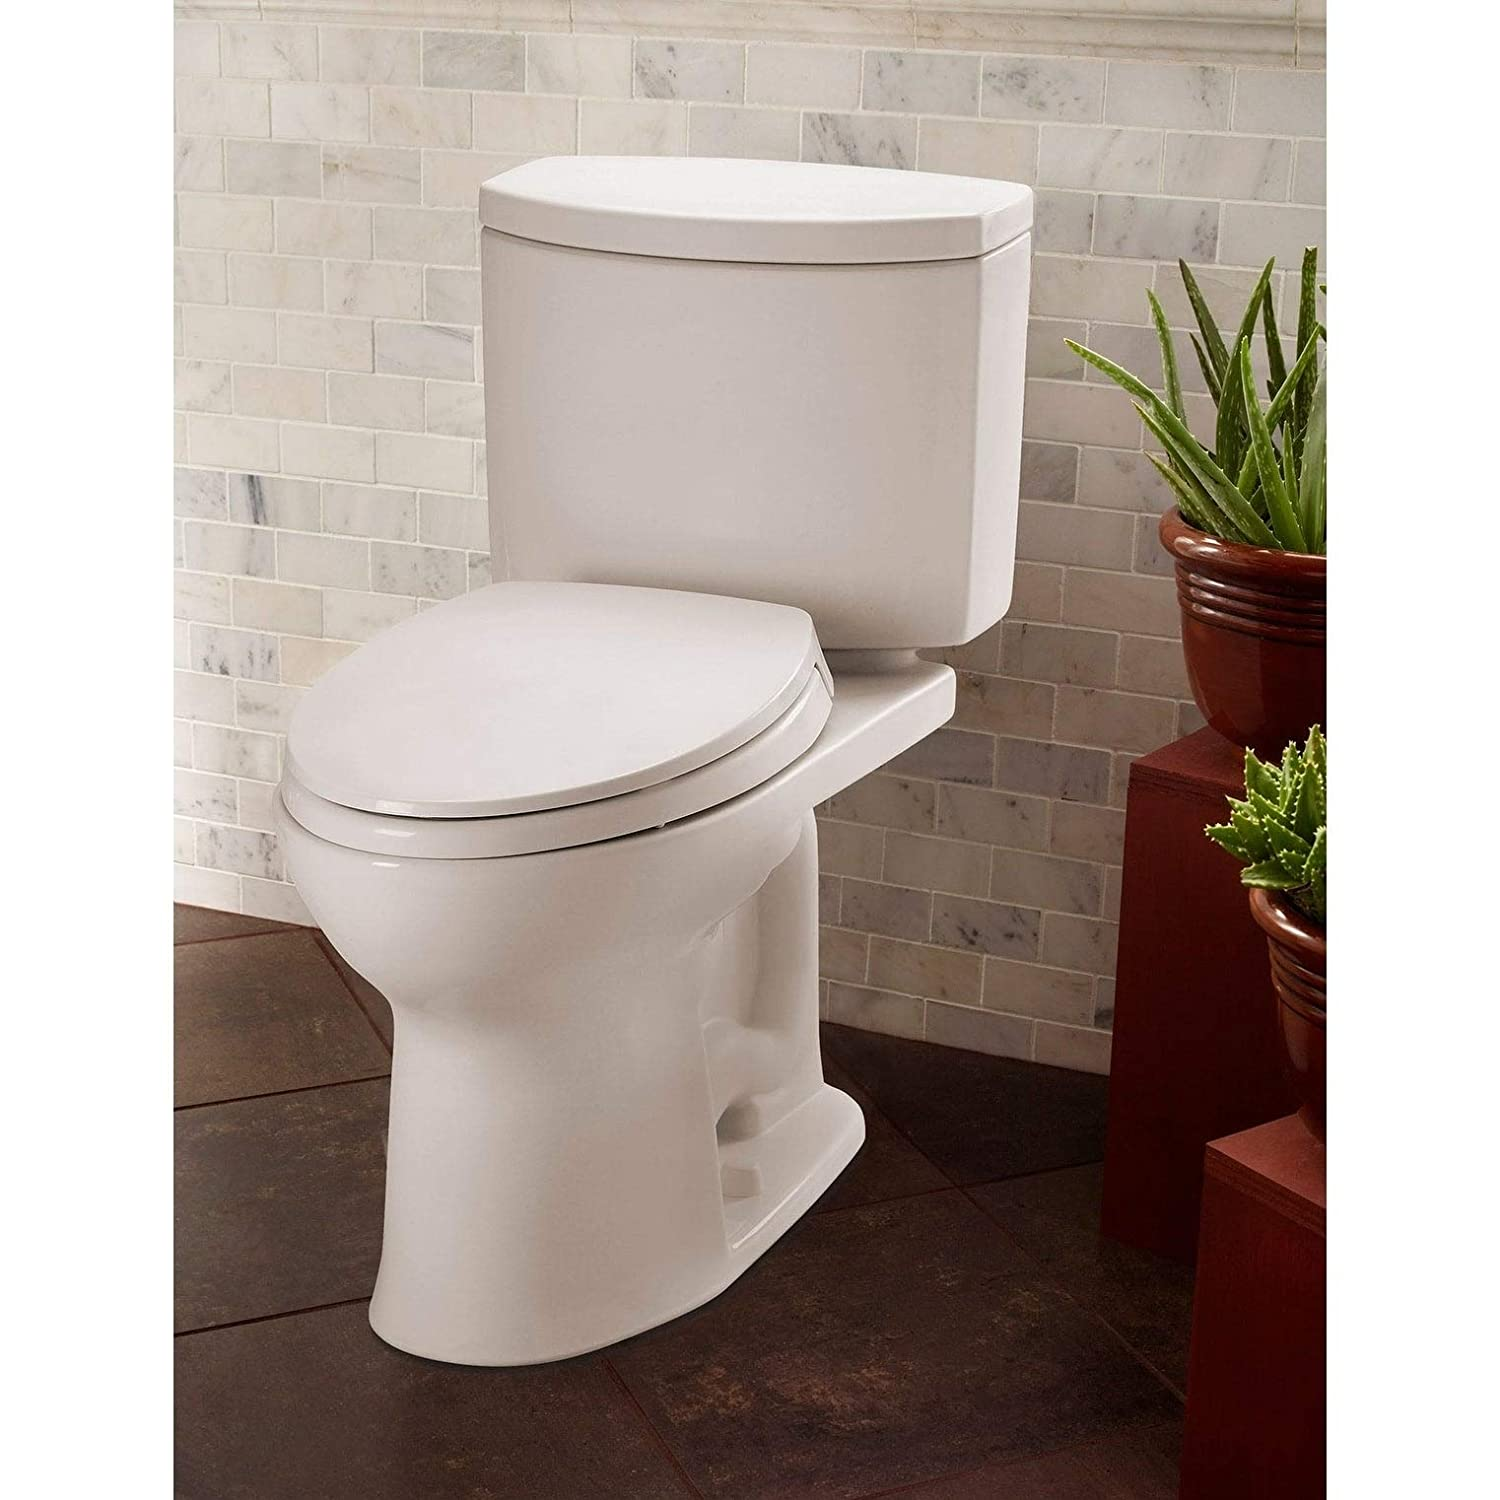 Best Toilets Under $200, $300 to $400 Reviews in 2020 10